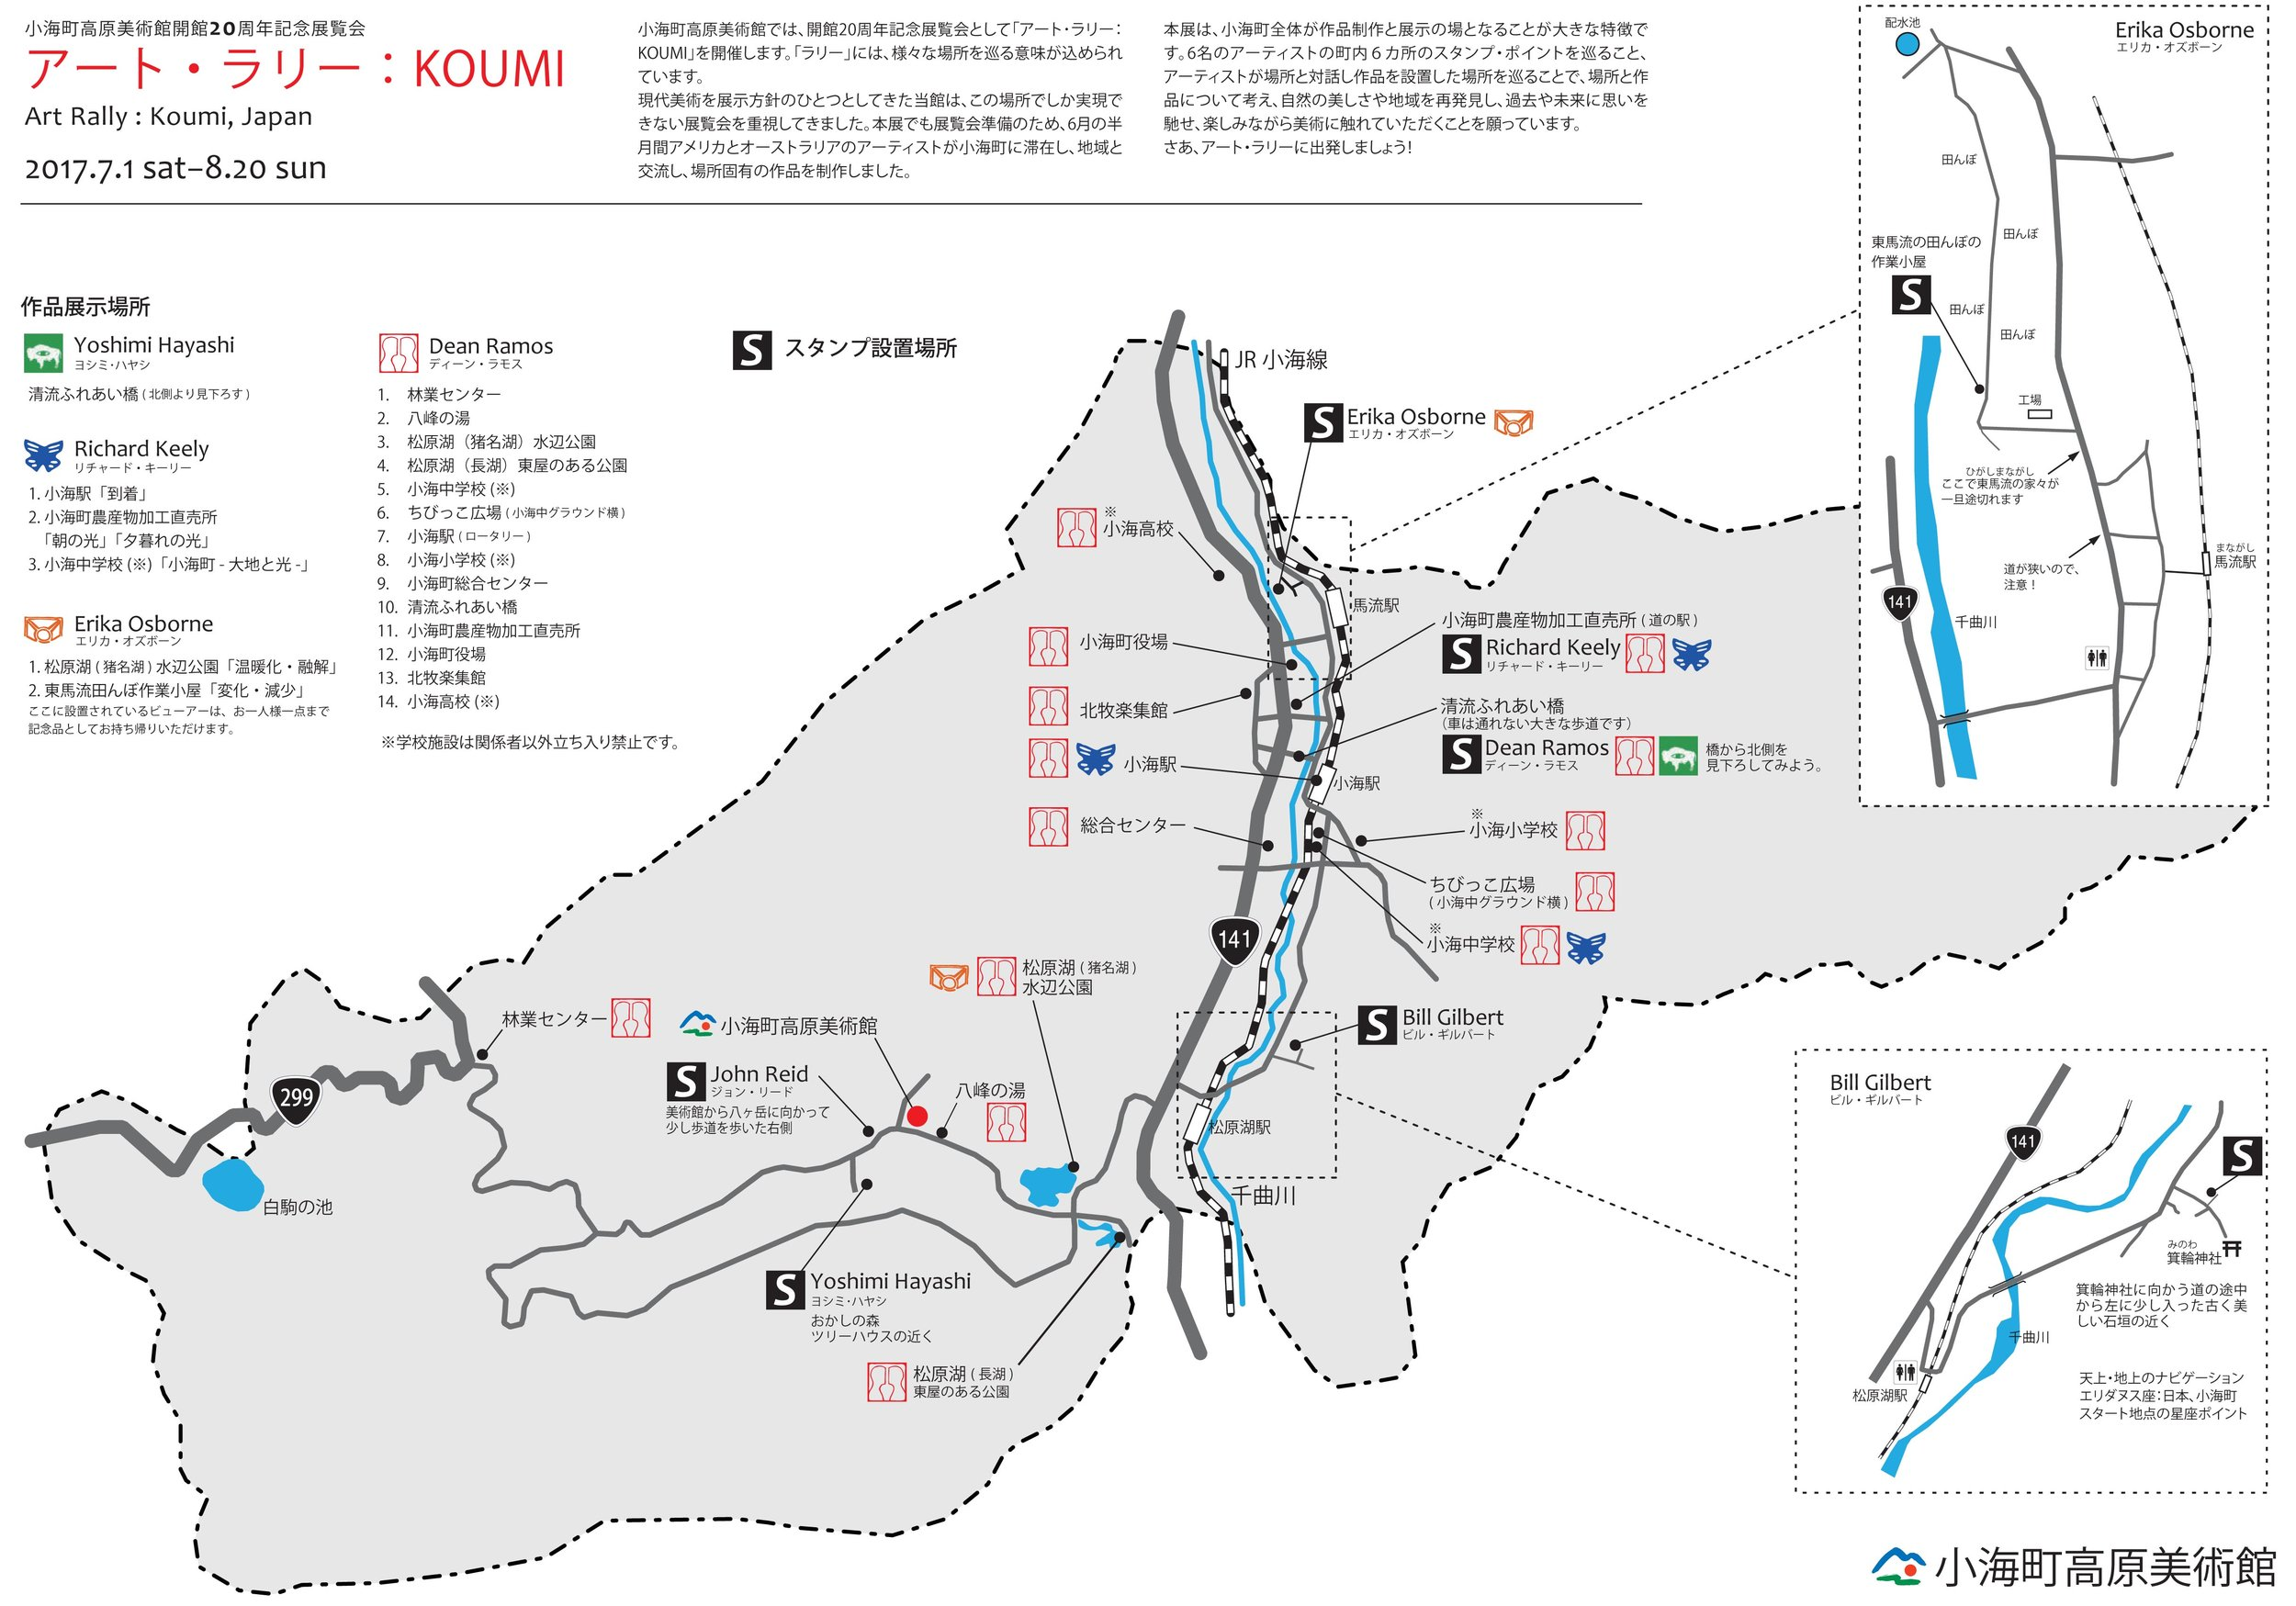 "This map depicts the various sites where artworks were installed around Koumi Machi during Art Rally: Koumi in June of 2017. The red squares depicting two heads facing each other is where my ""Face to Face"" sculptures were installed."